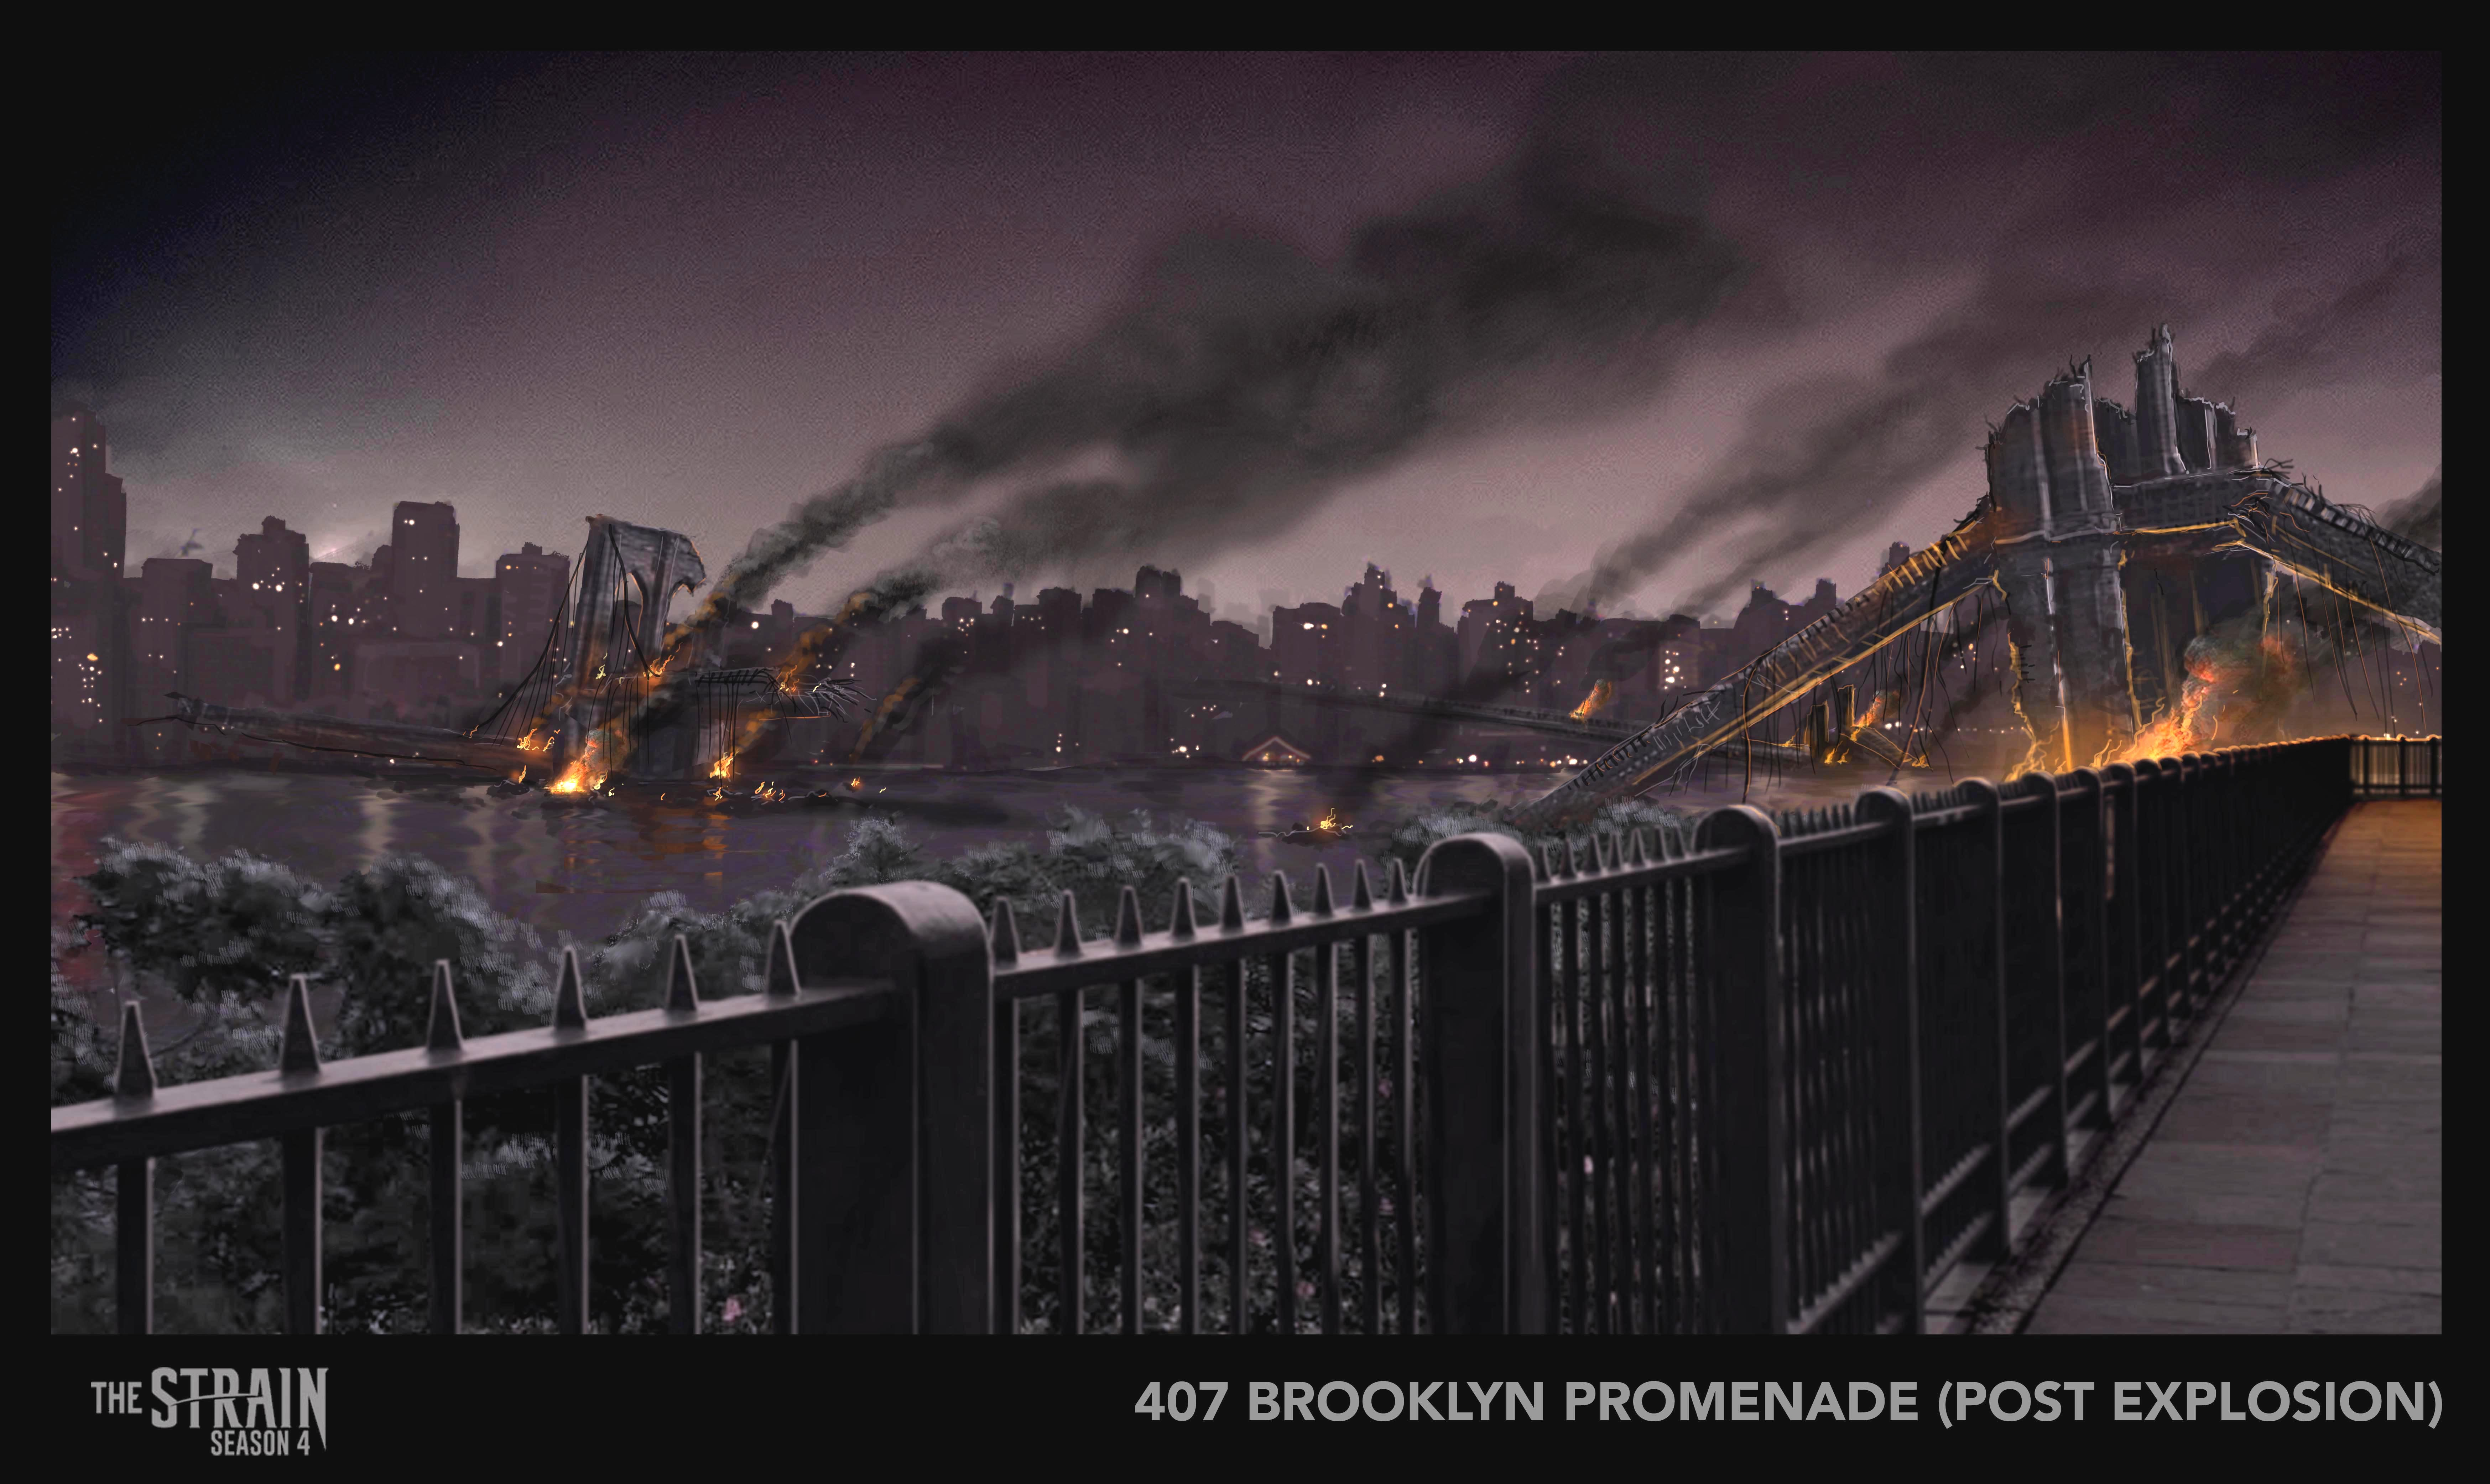 407_Ext. Brooklyn Promenade_Post Explosion_CP